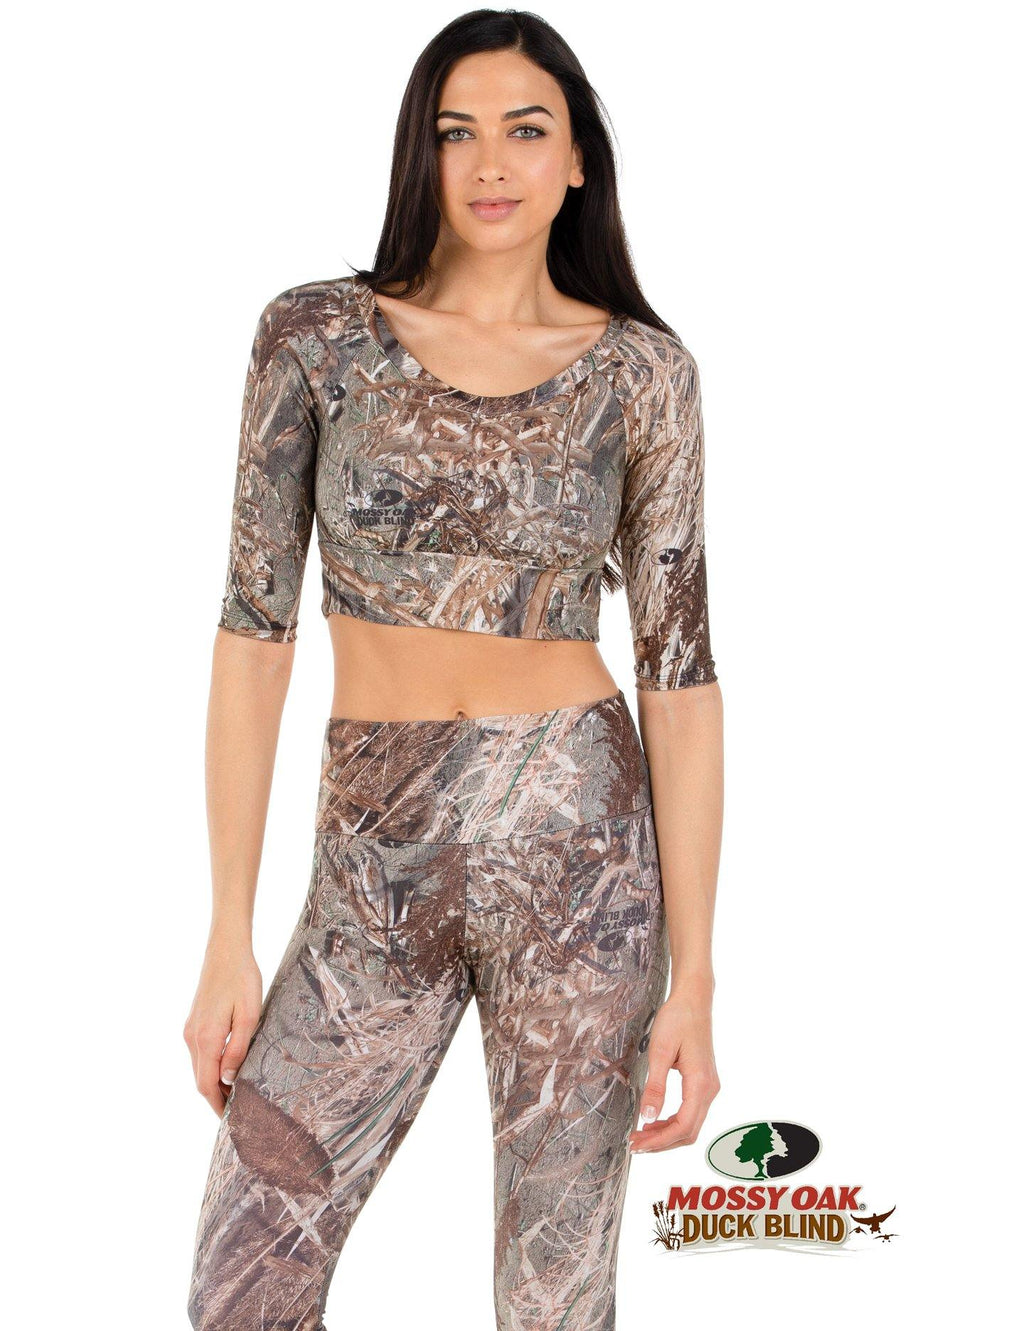 Apsara Cropped Top, Mossy Oak Duck Blind